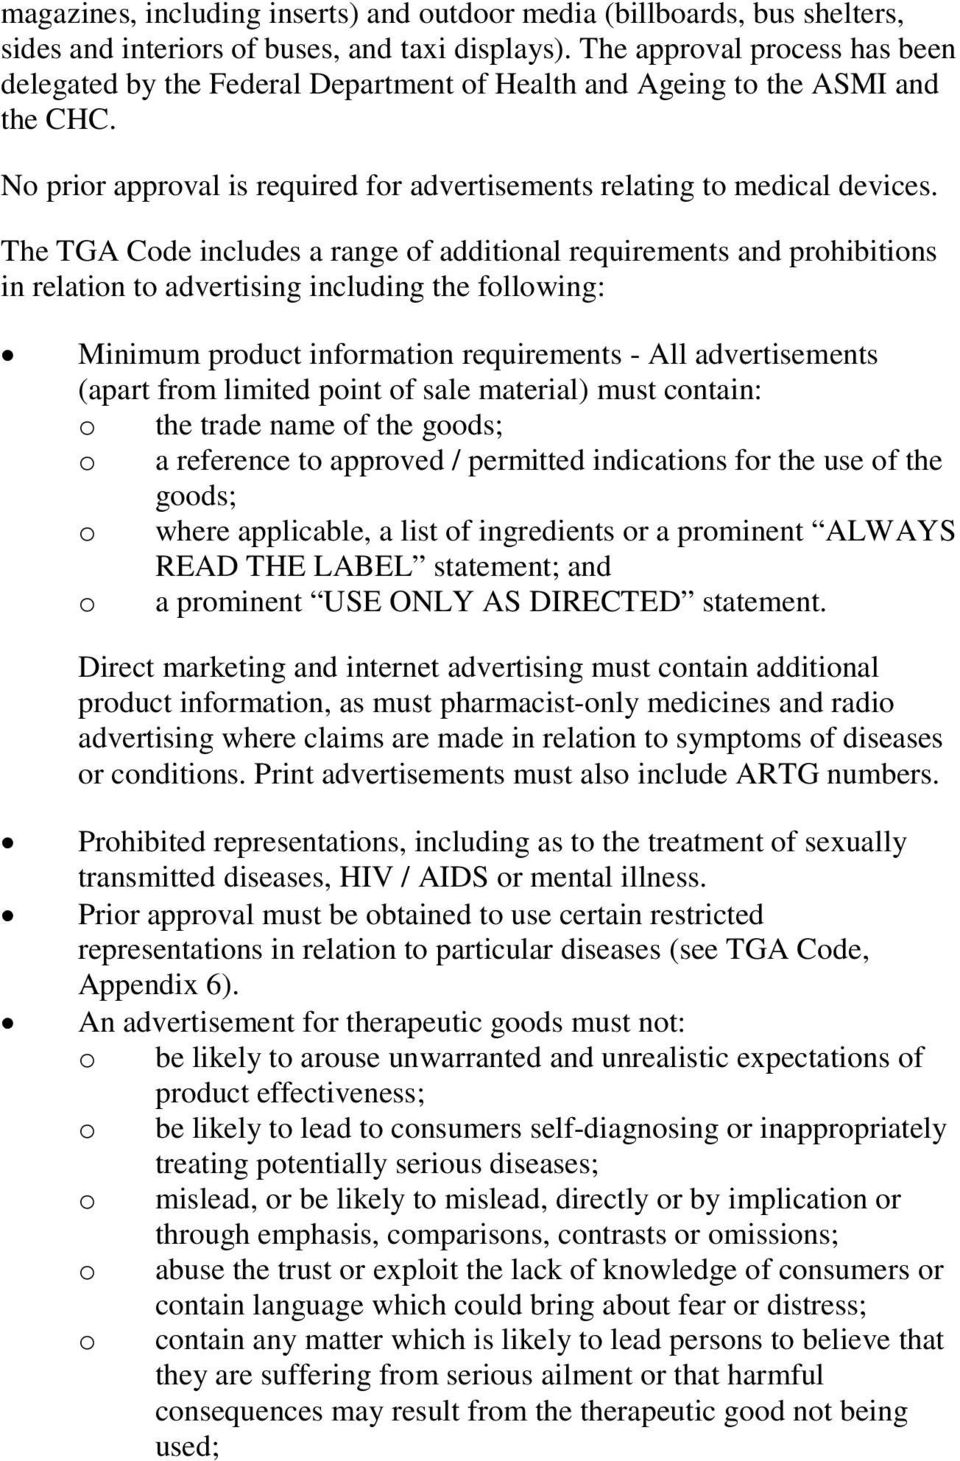 The TGA Code includes a range of additional requirements and prohibitions in relation to advertising including the following: Minimum product information requirements - All advertisements (apart from